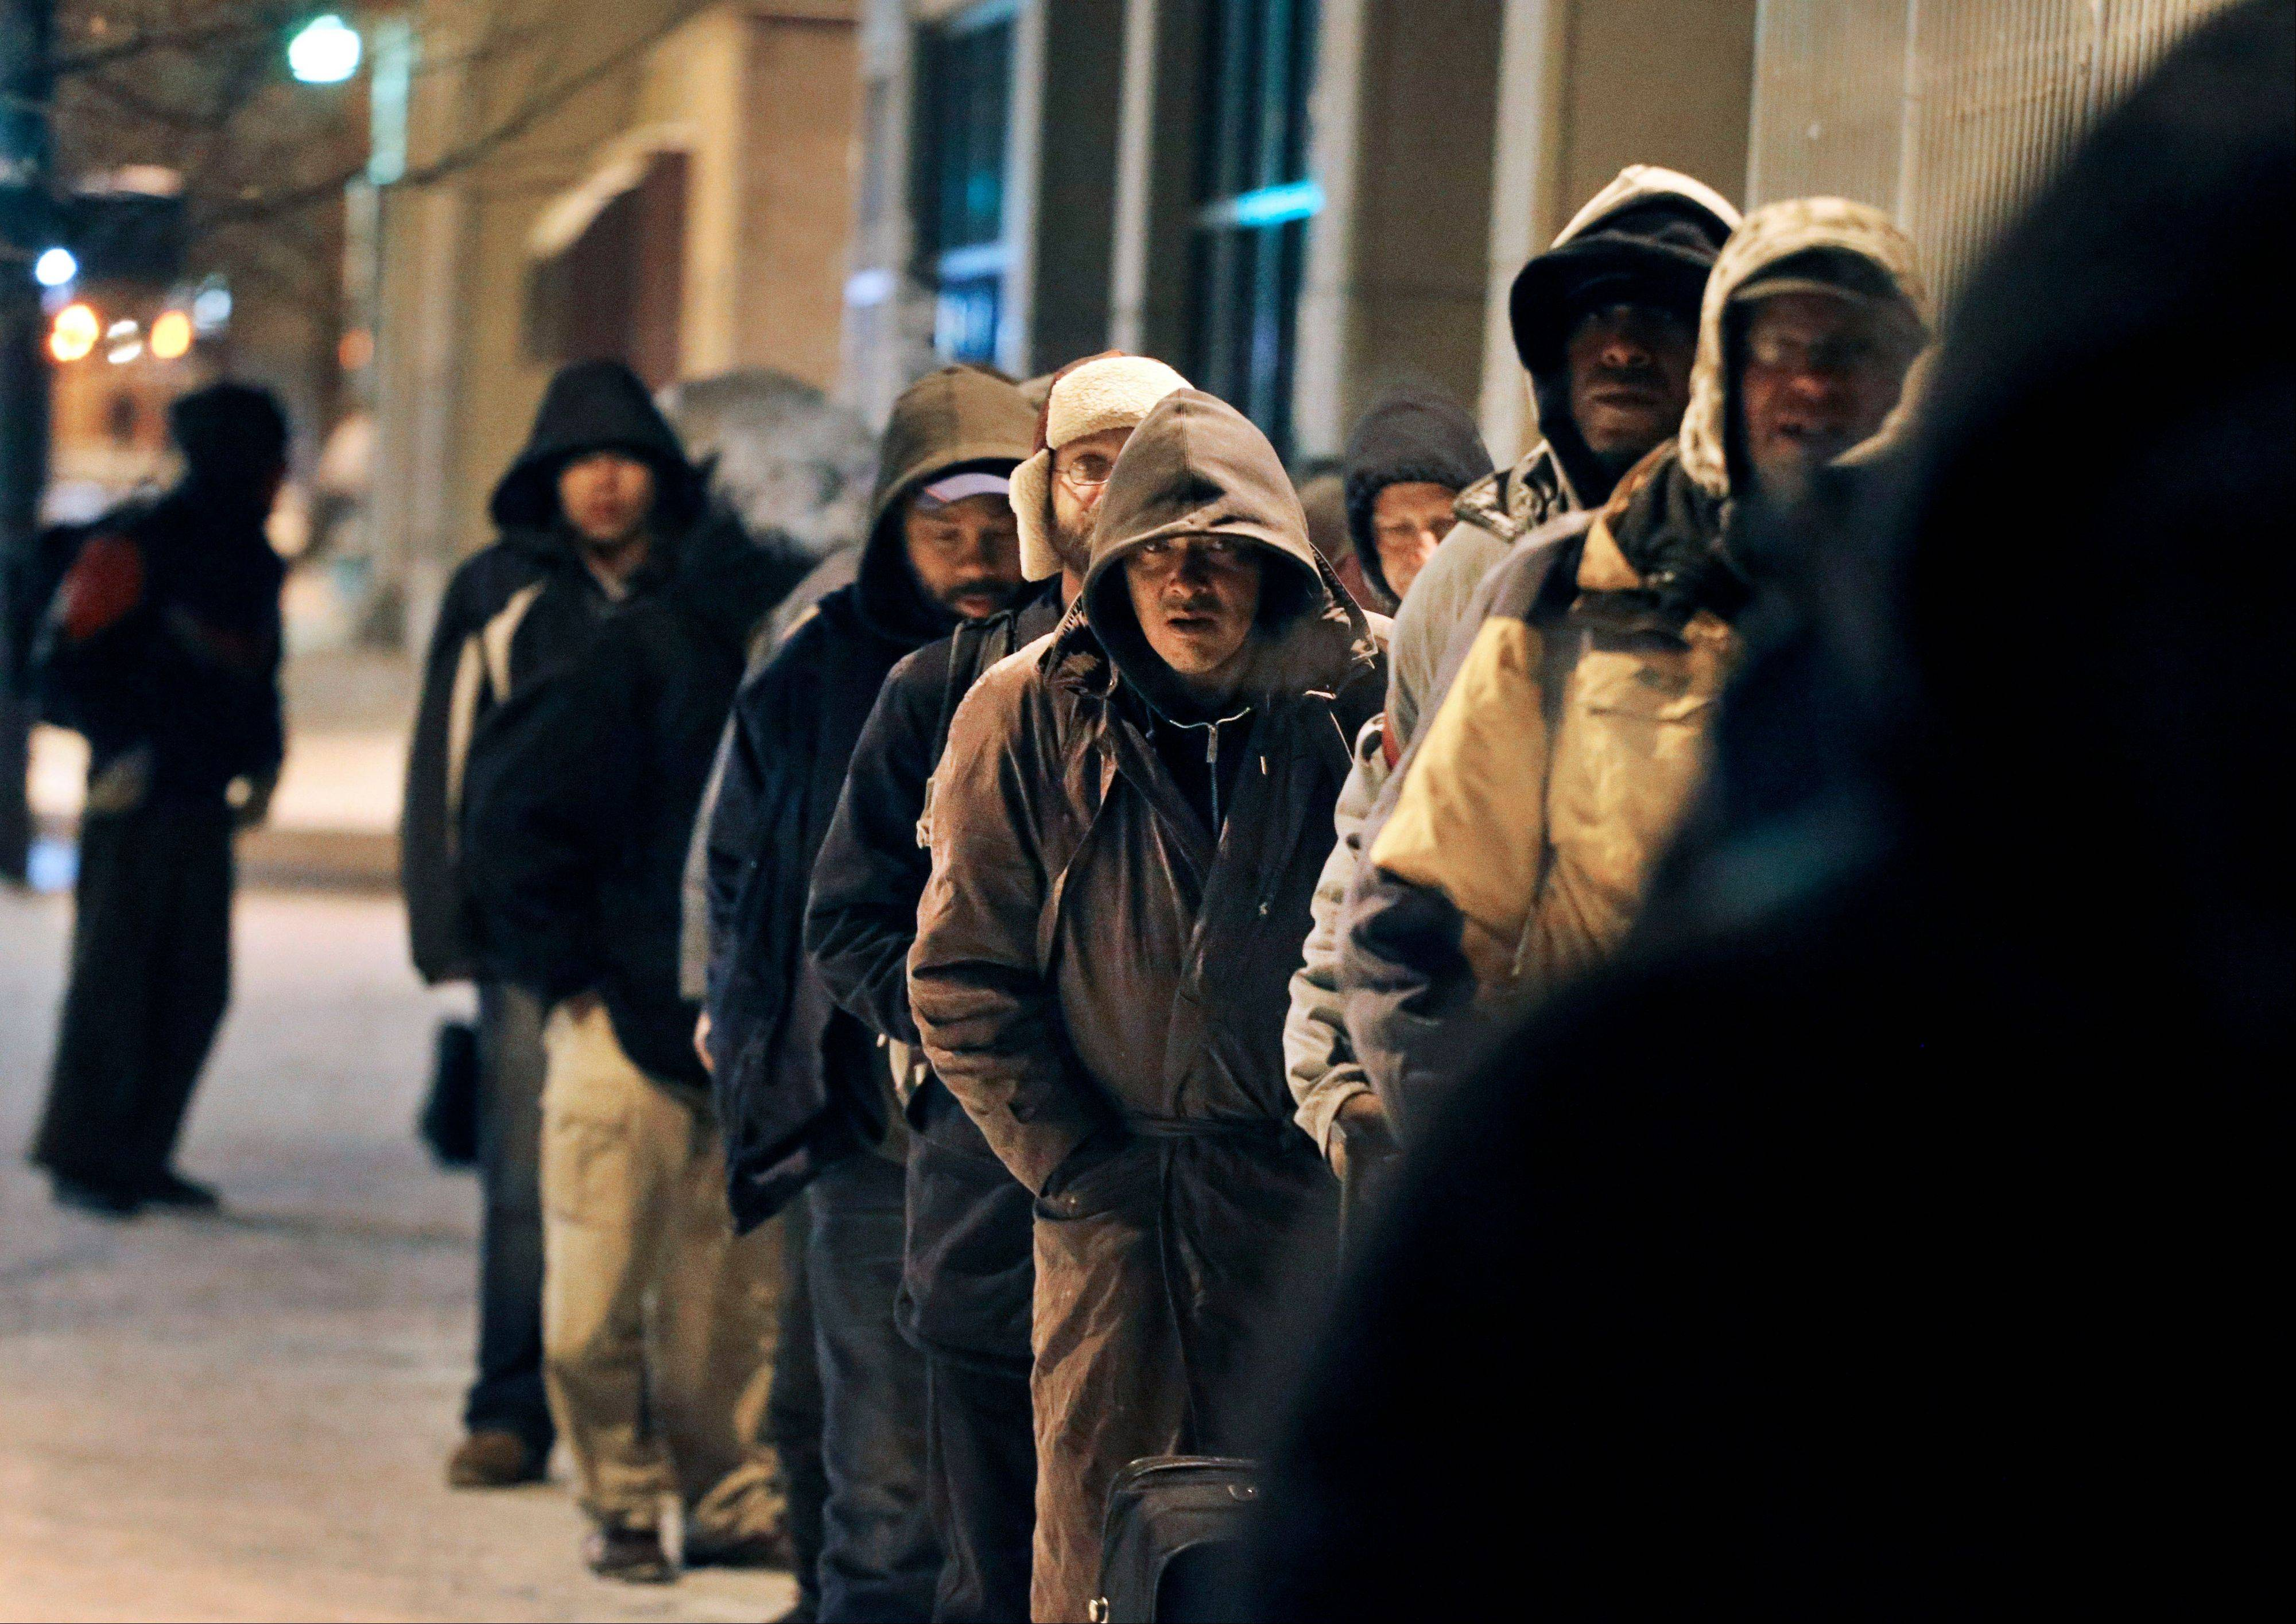 Before dawn and in -9 degree weather, men wait for the opening of the St. Francis Center's day shelter, in downtown Denver, Thursday Dec. 5, 2013.